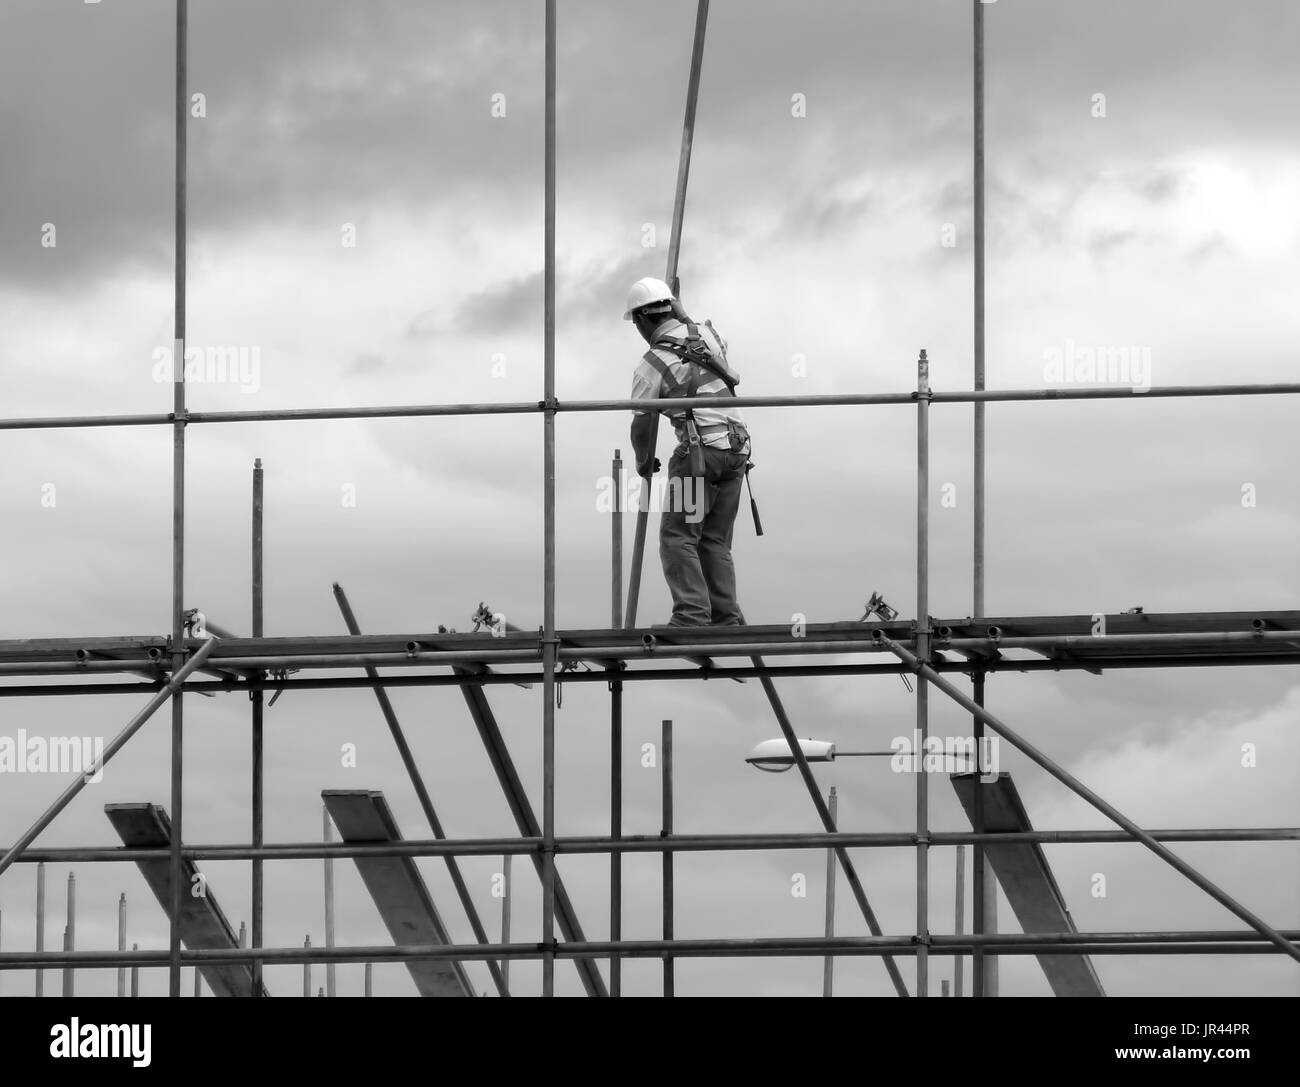 Scaffolding Clamps Stock Photos & Scaffolding Clamps Stock Images ...